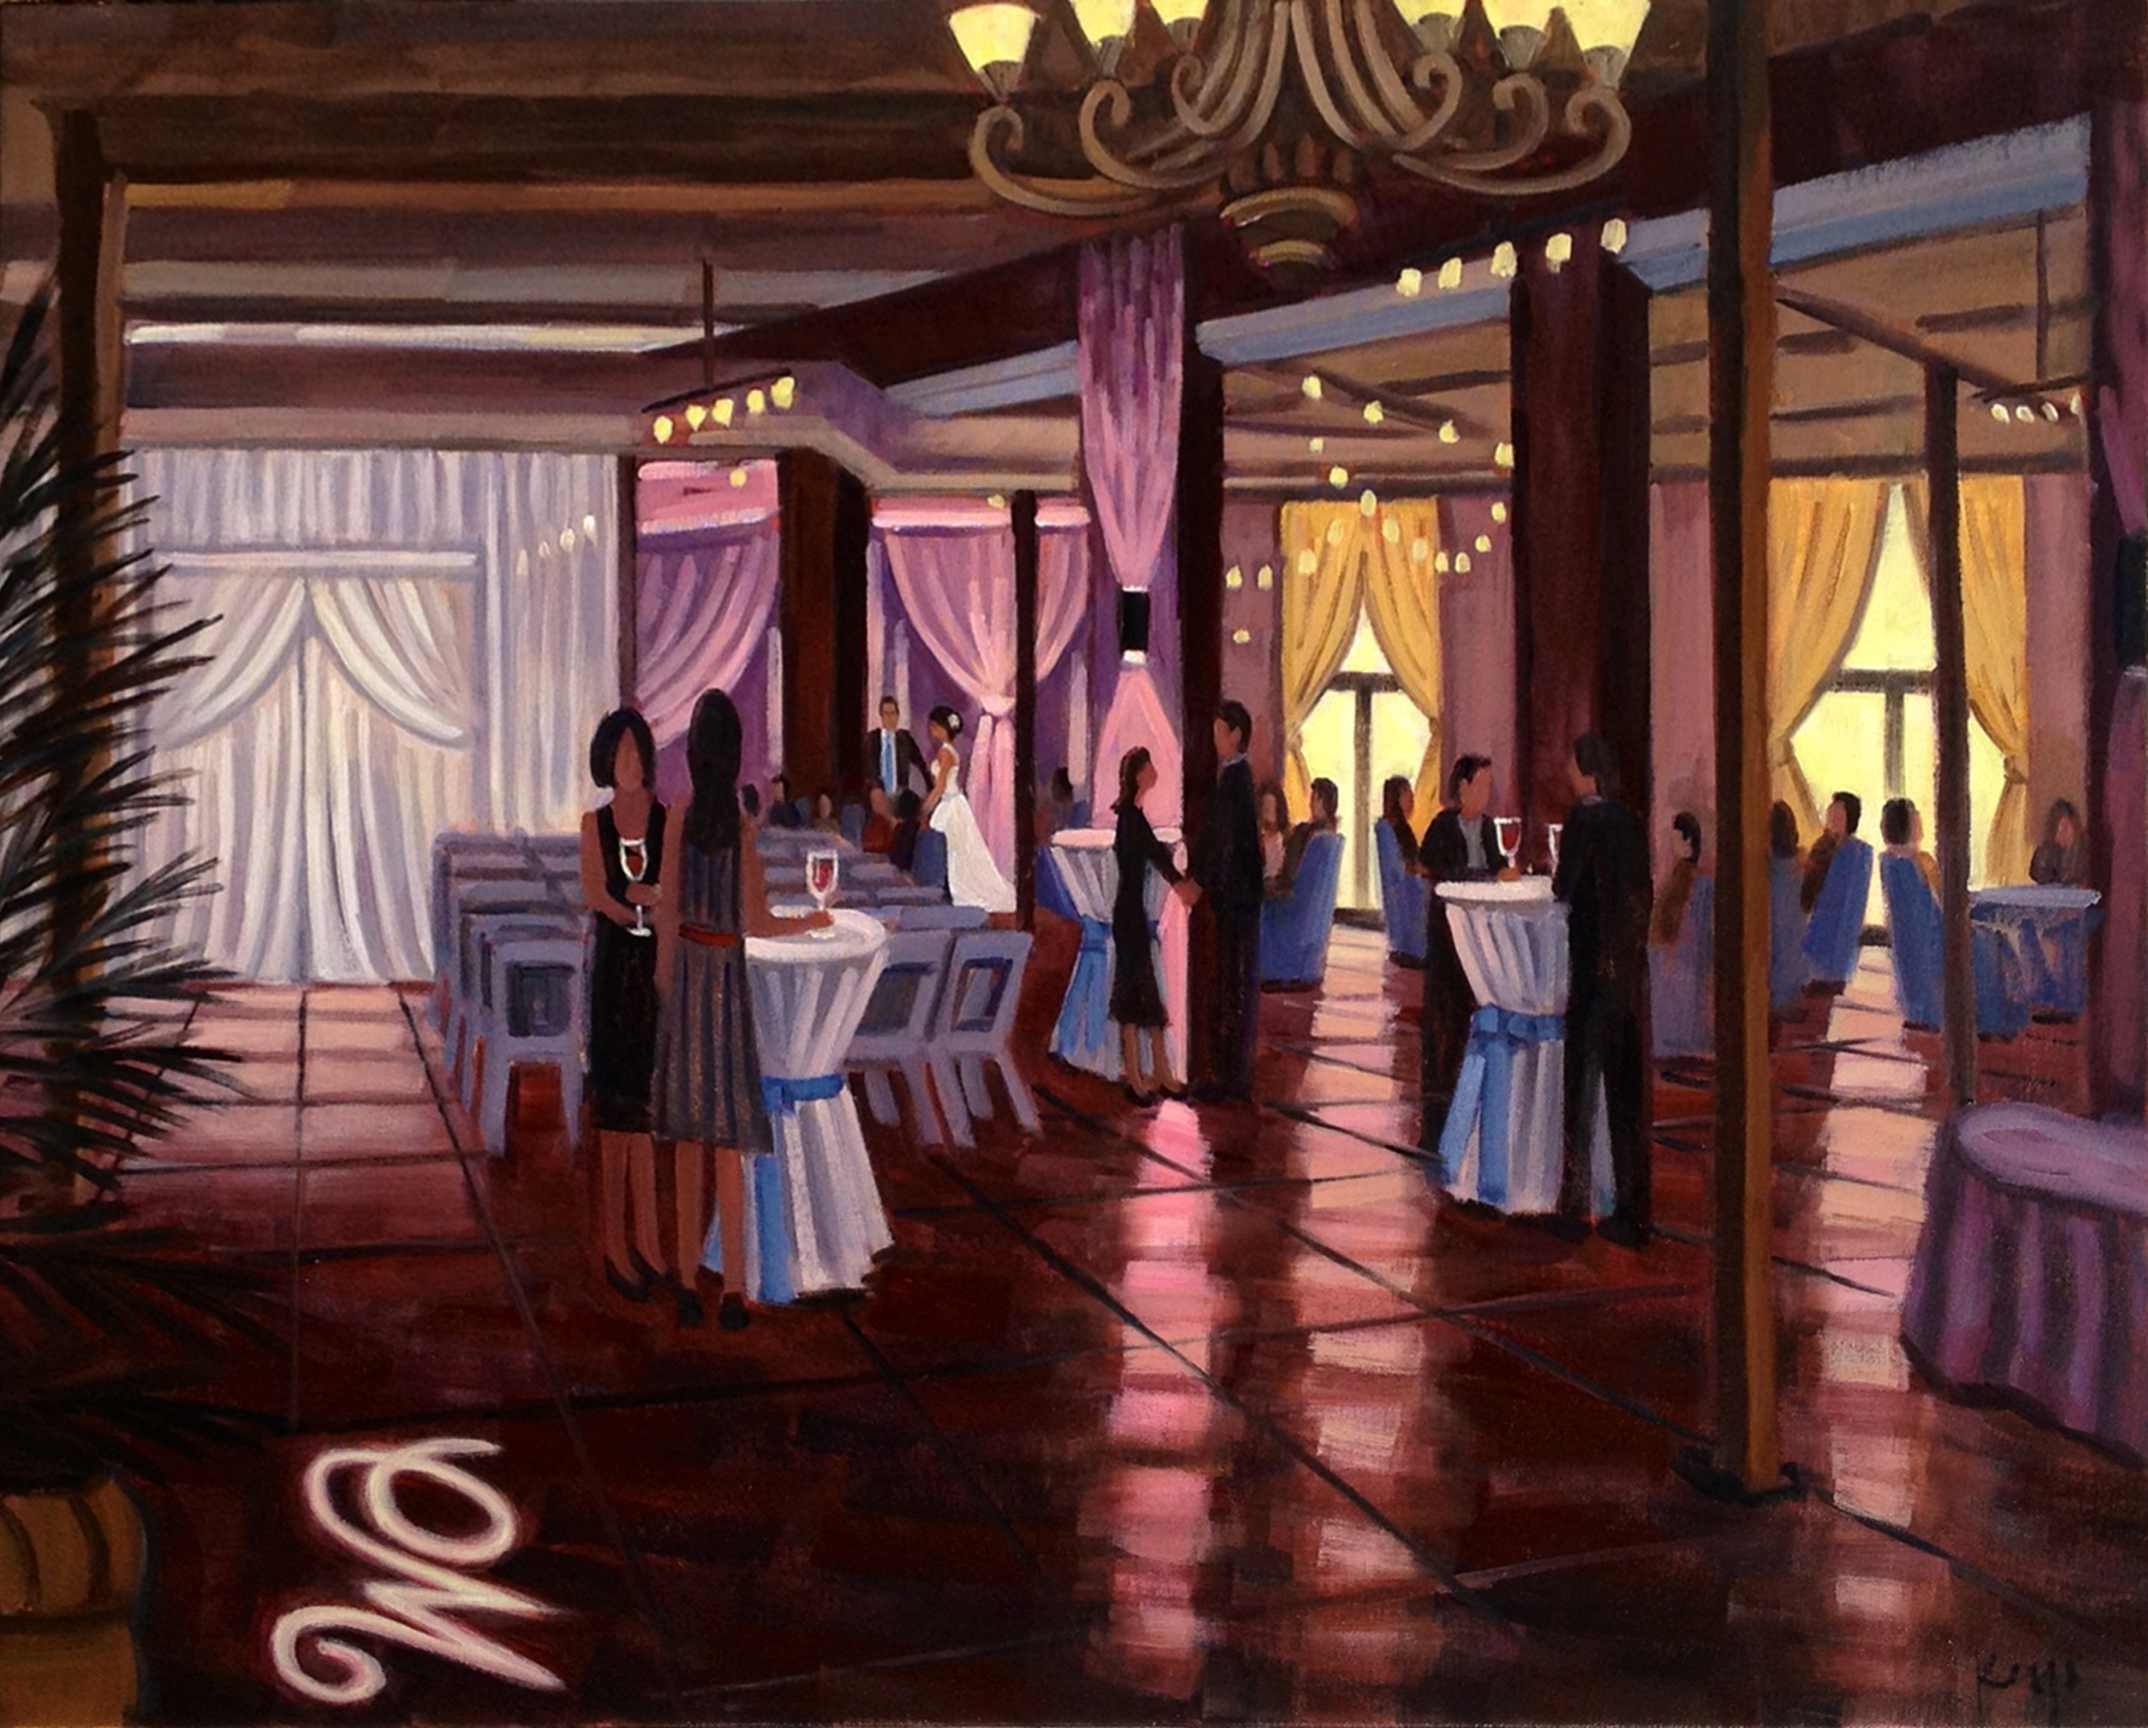 The Mill Event Hall of Chattanooga, Tennessee // Wedding Painting by Ben Keys, Wedding Artist of Wed on Canvas // Faux Wedding Reception Event